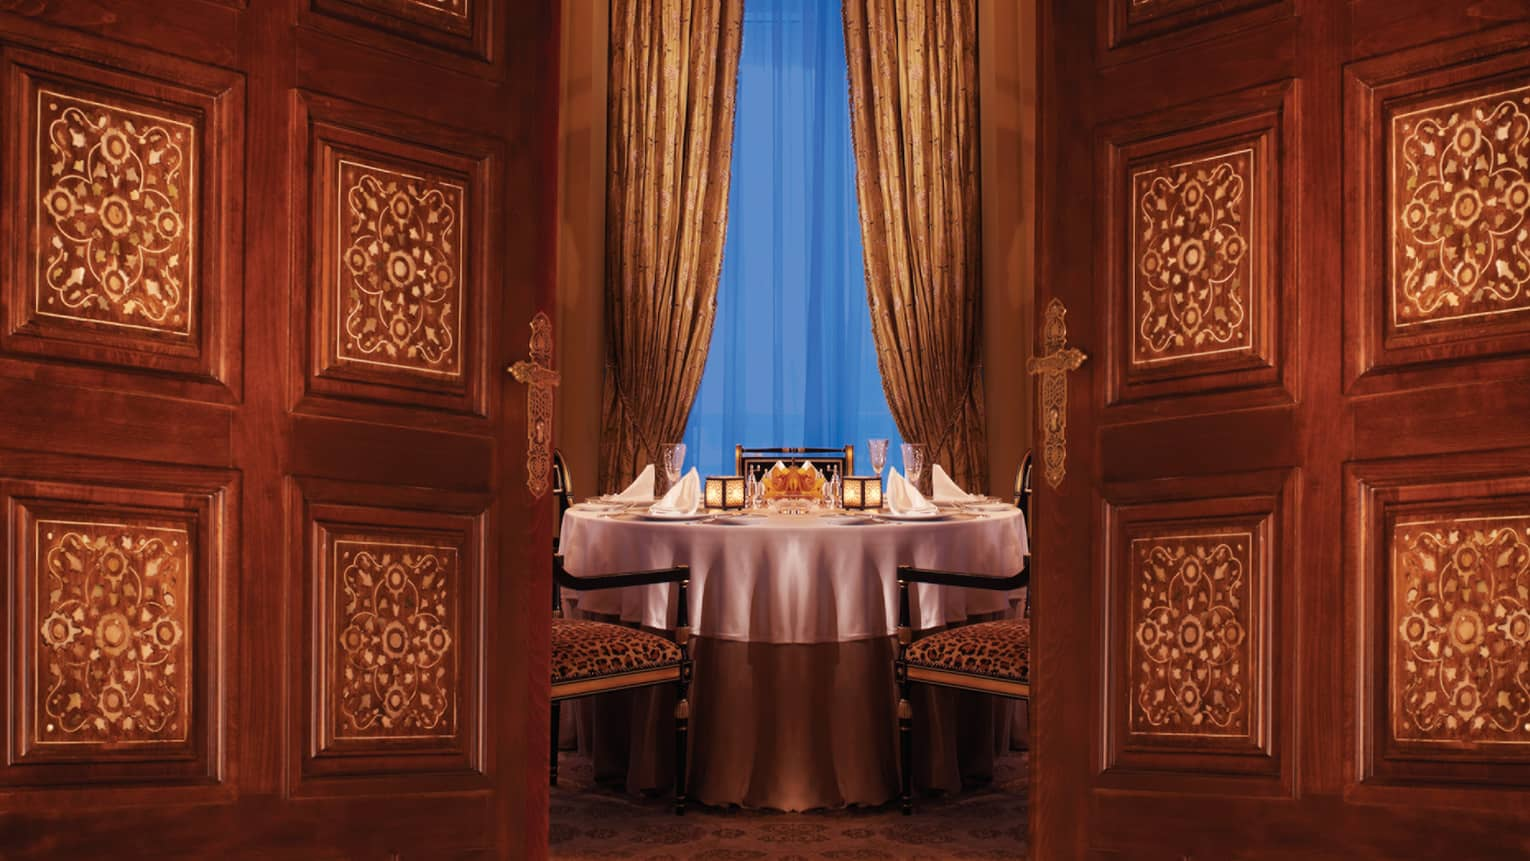 Byblos Restaurant round candle-lit dining table visible between two decorative wood doors